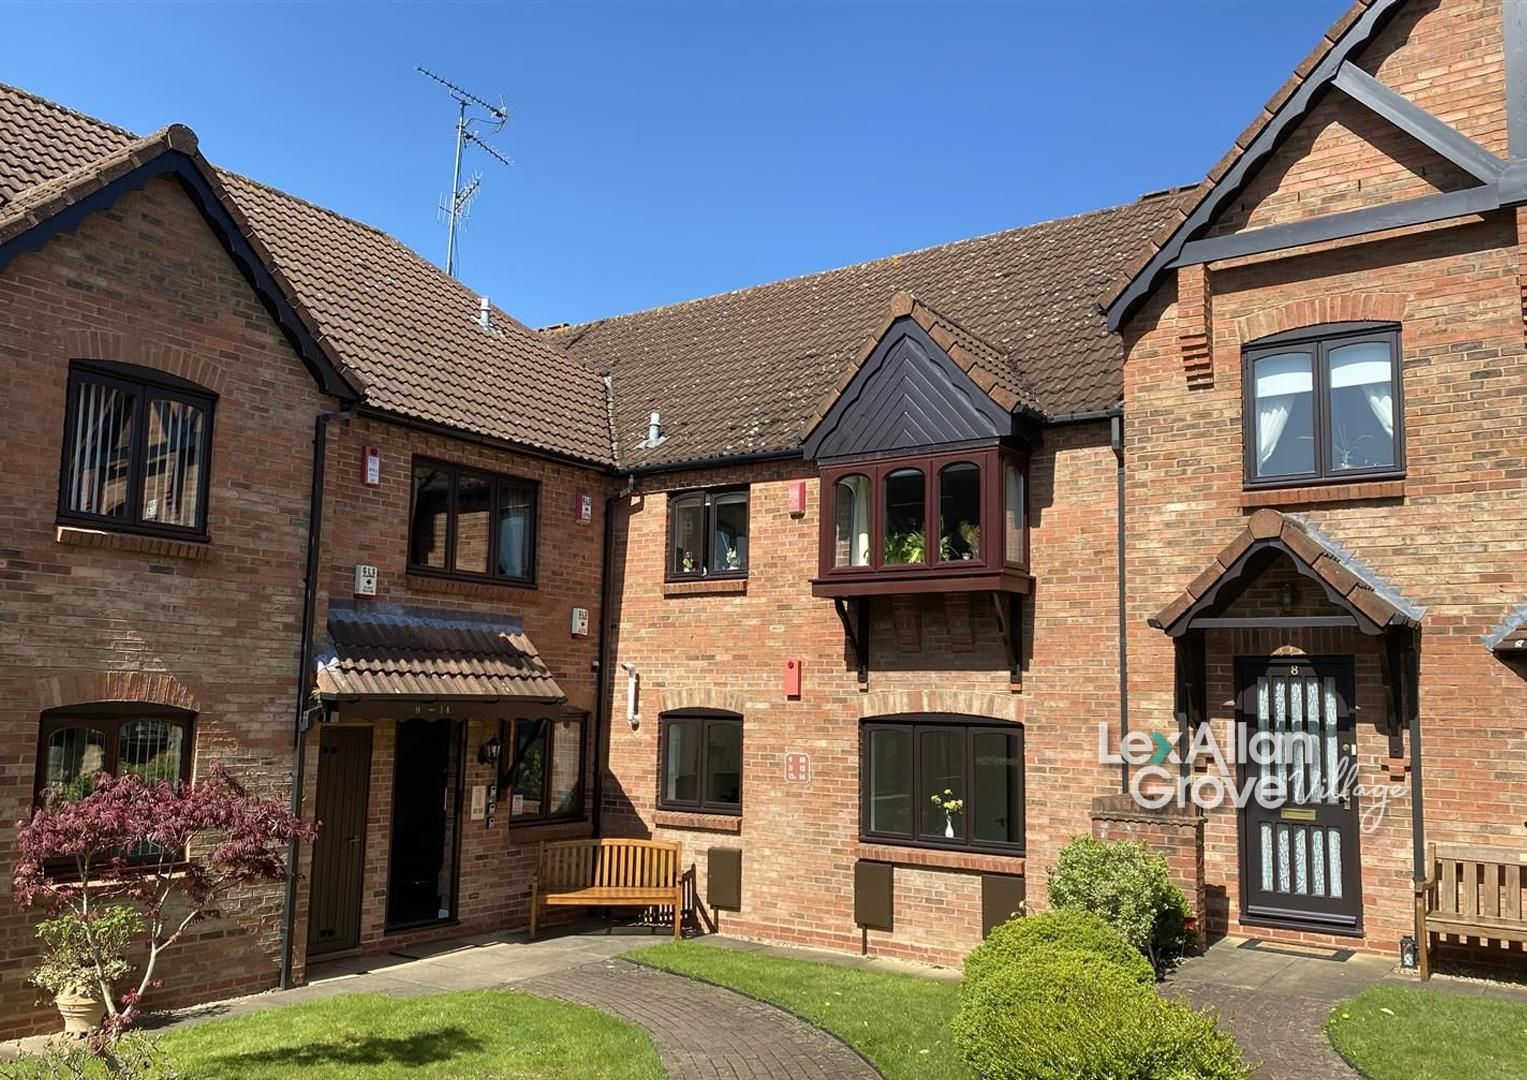 2 bed apartment for sale in Belbroughton, DY9